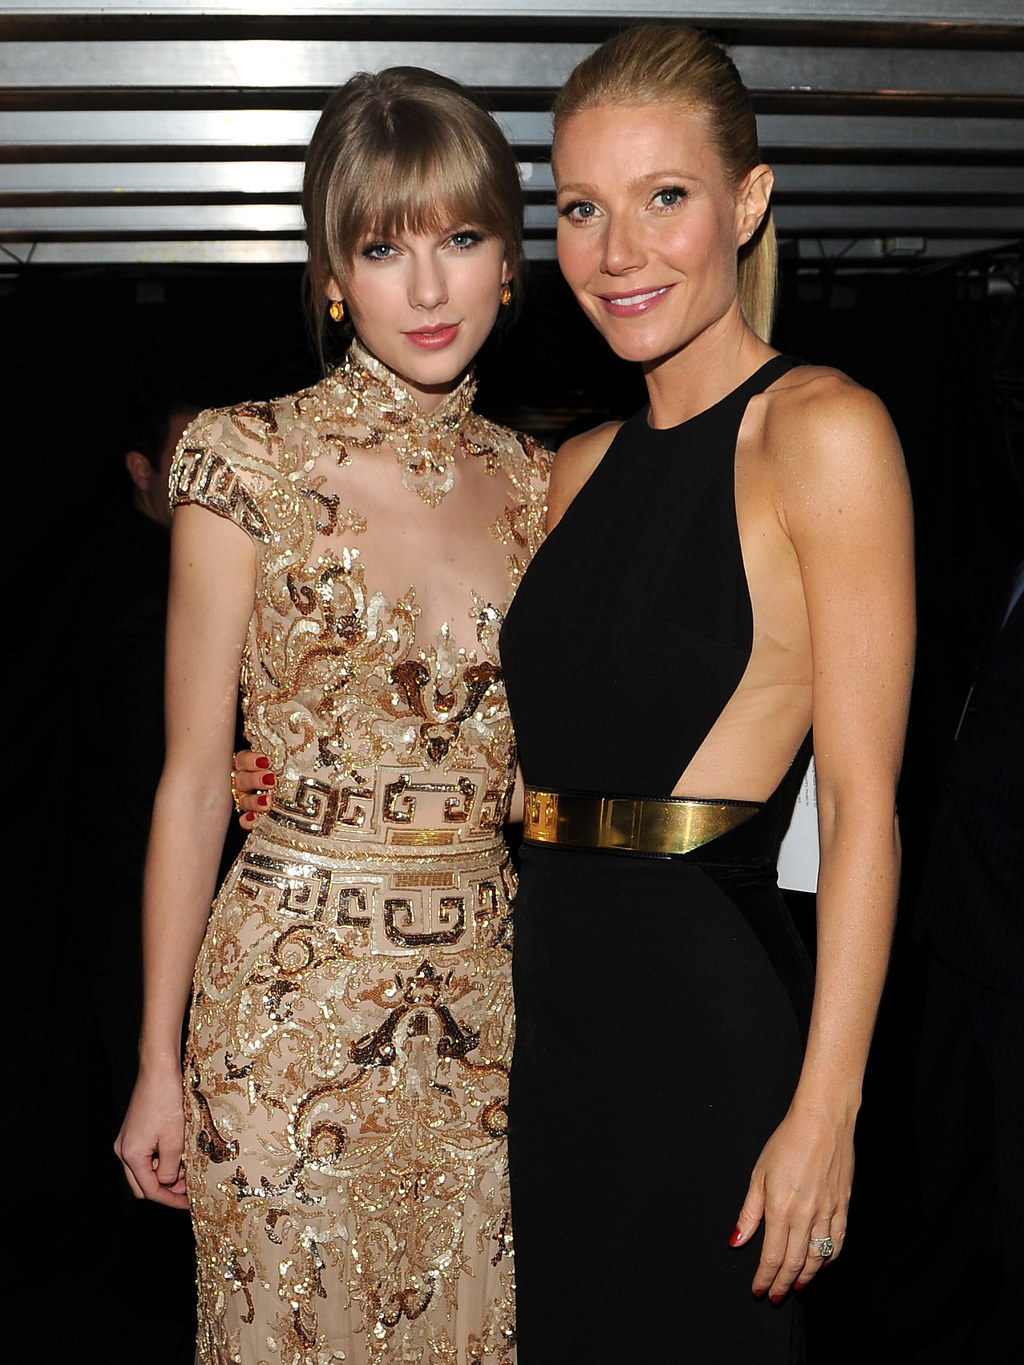 Gwyneth Paltrow Partially Cropped Her Son Out Of A Photo Of Herself And Taylor Swift